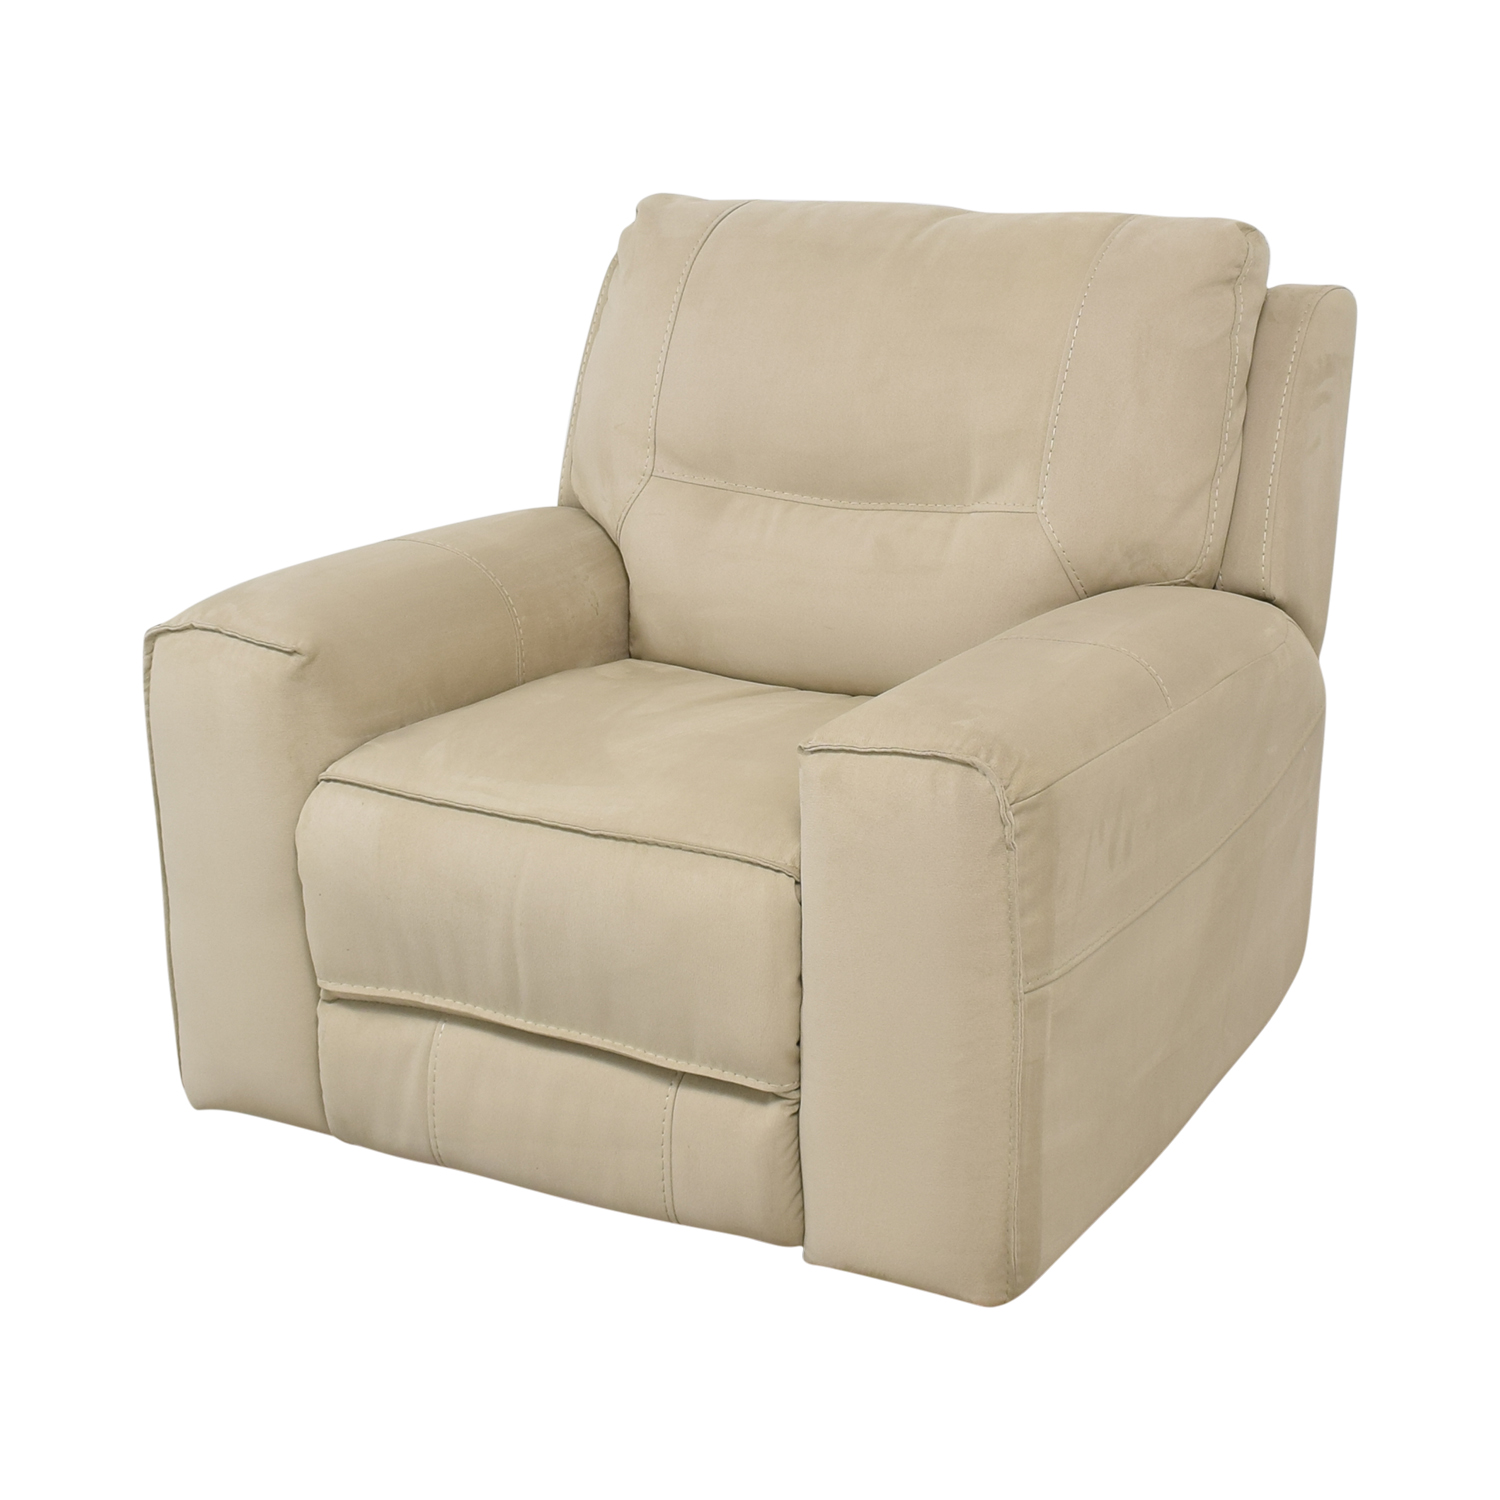 Macy's Power Recliner Chair / Recliners